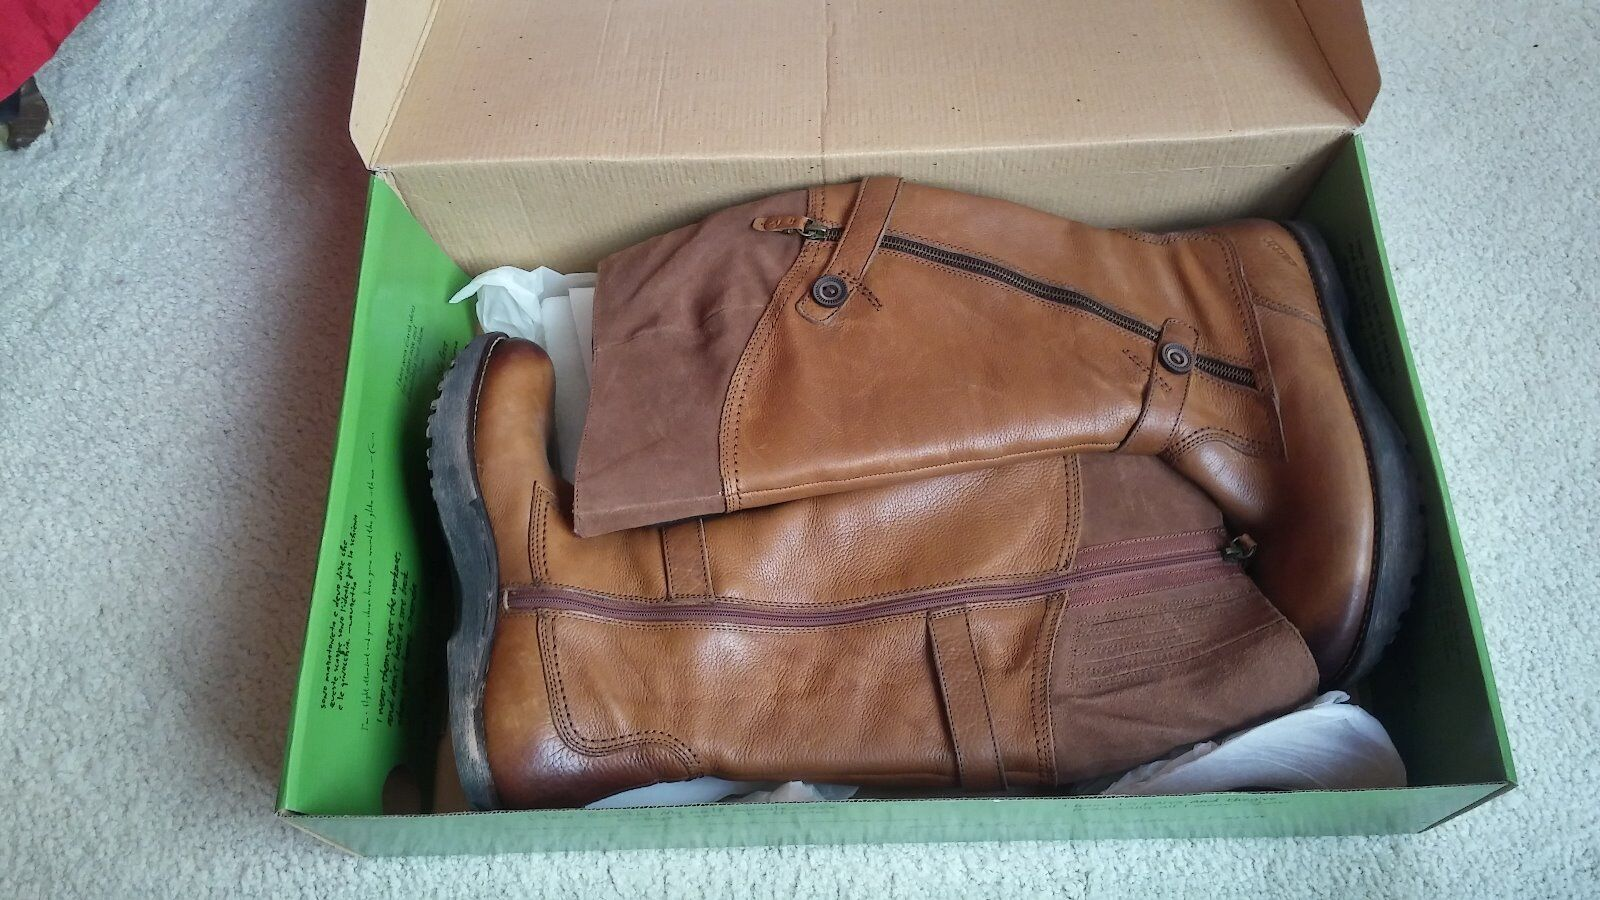 Earth Donna boots new from size 9.5 amond leather from new nordstrom 8012a0